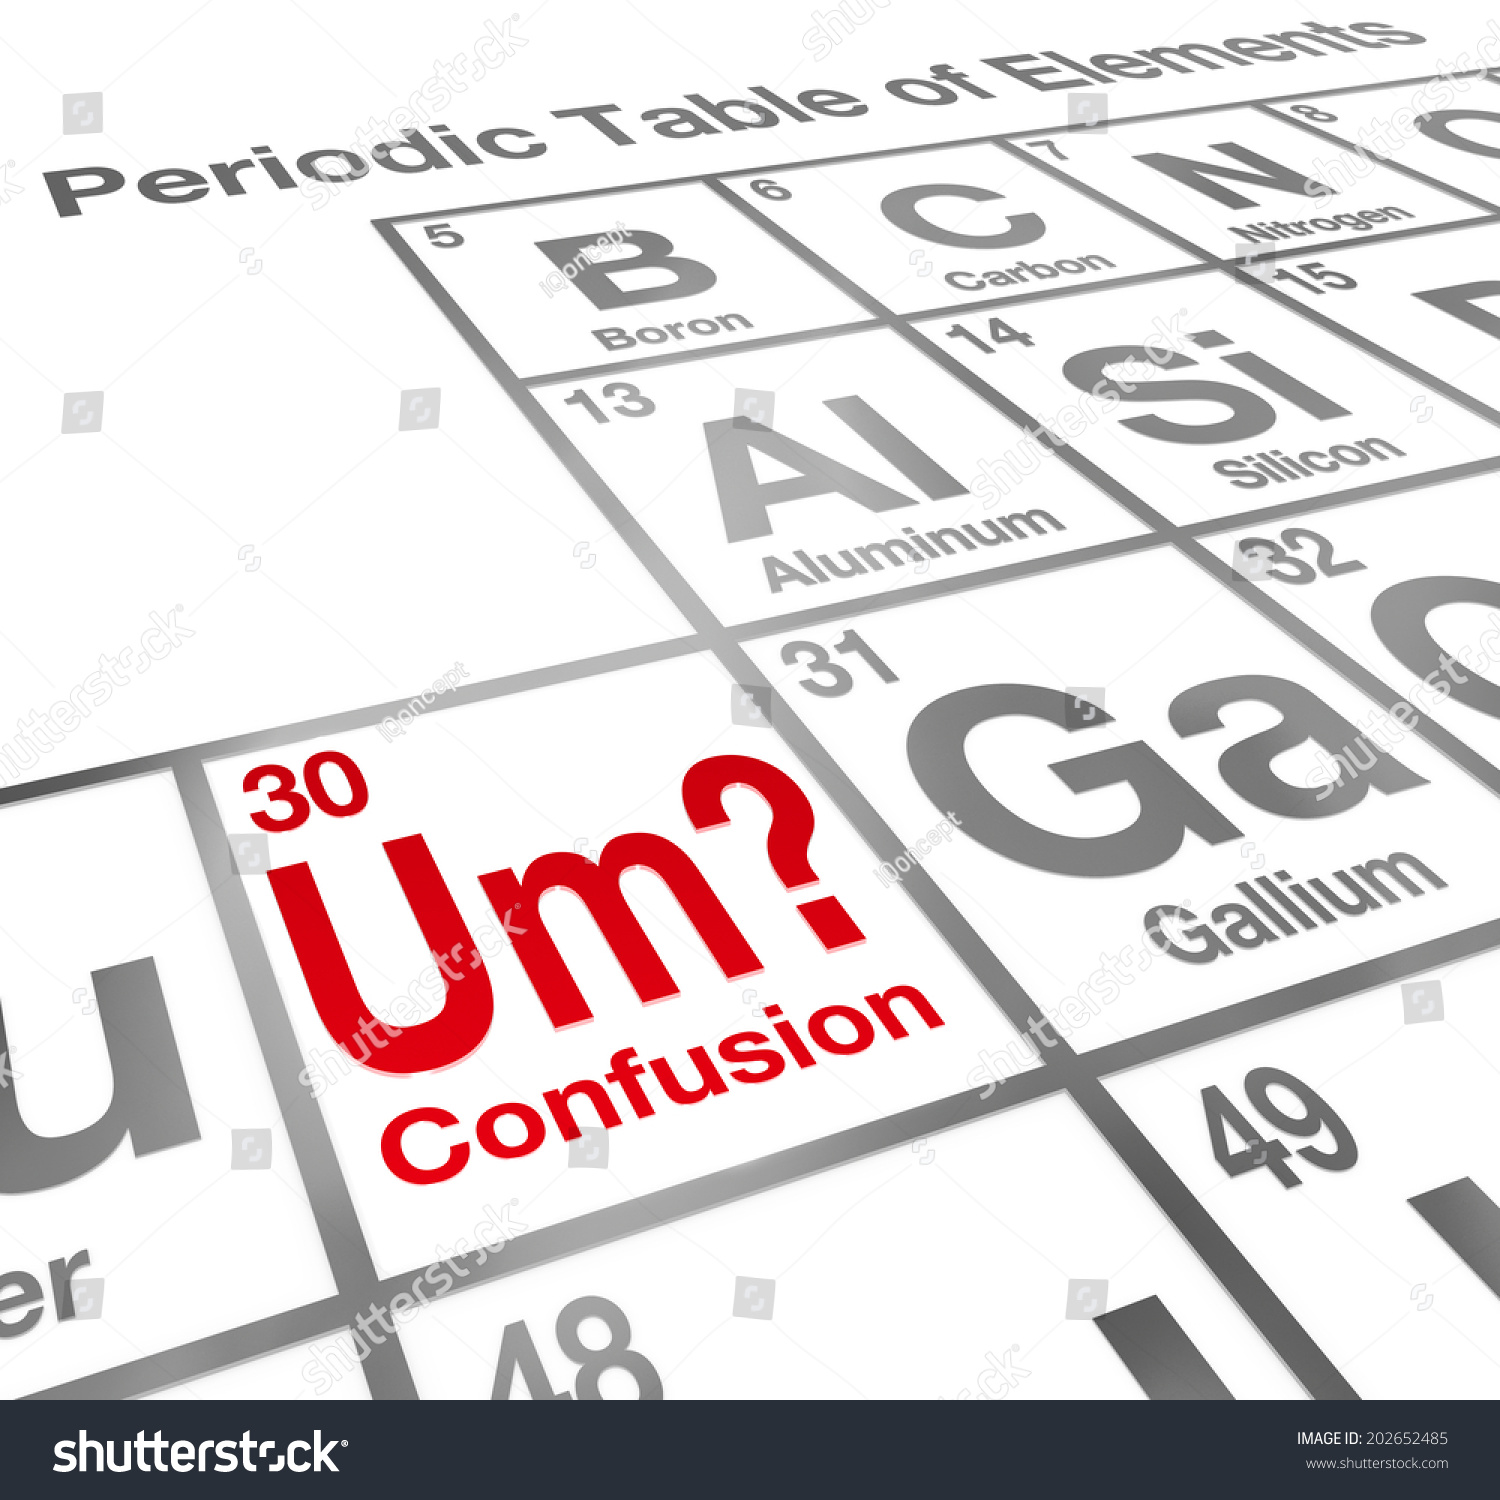 Periodic table heaviest element gallery periodic table images periodic table heaviest element gallery periodic table images periodic table jefferson lab image collections periodic table gamestrikefo Images